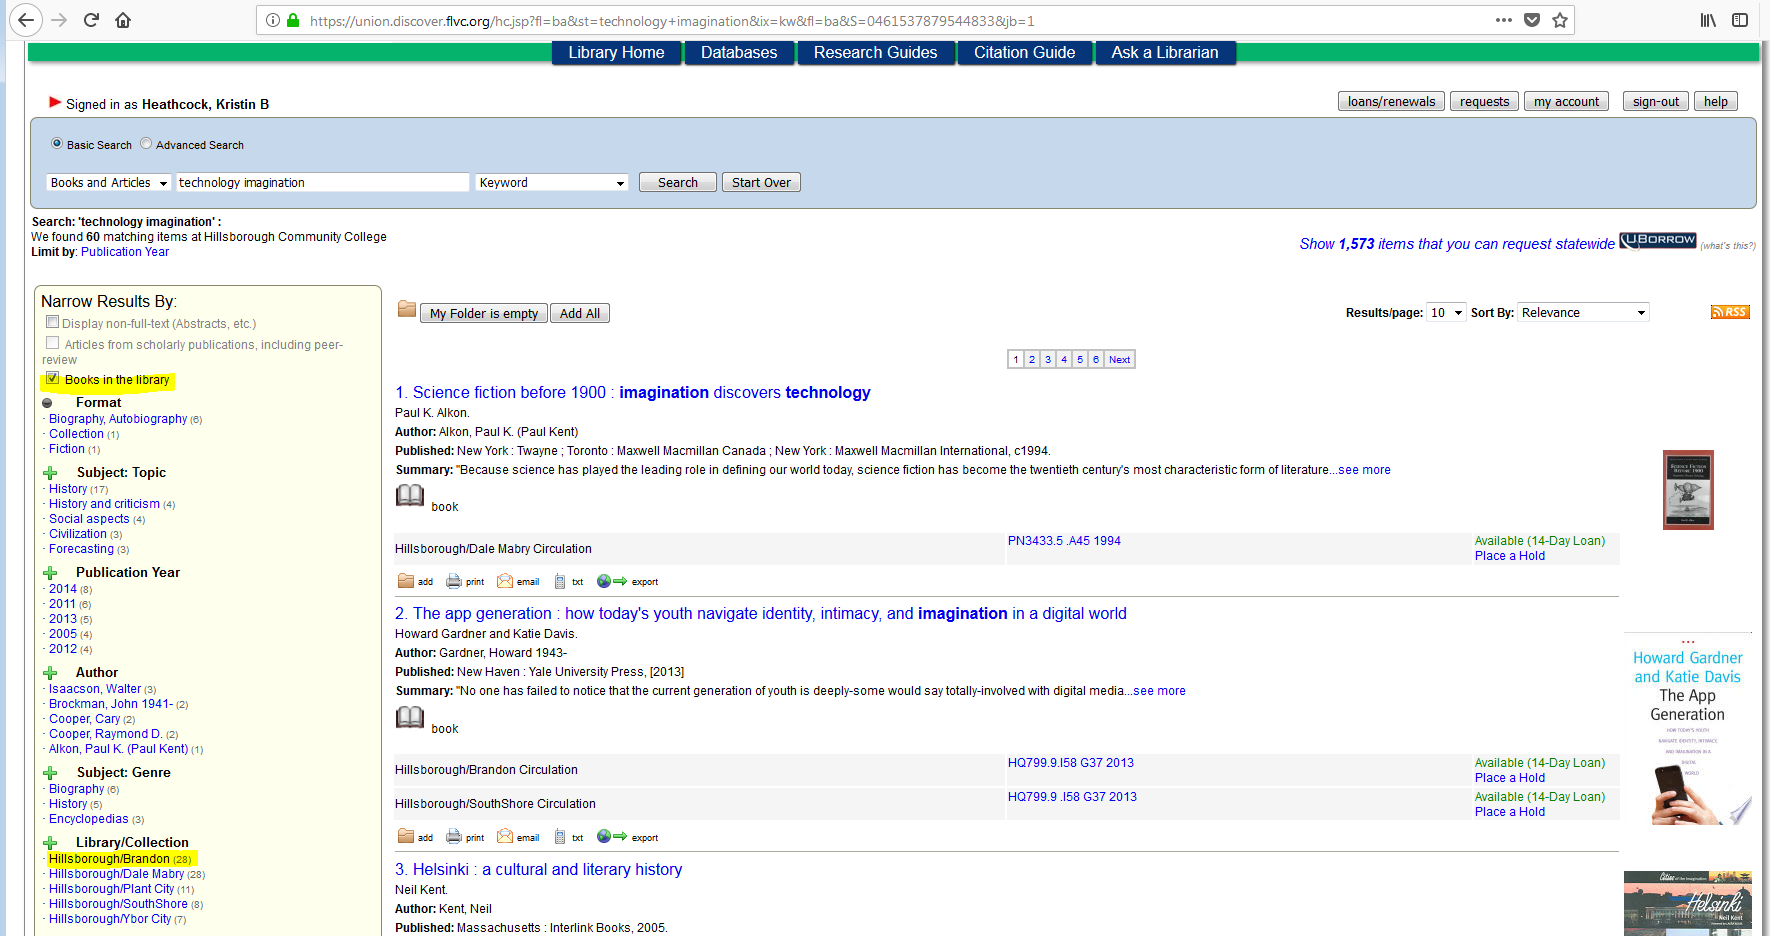 Library catalog search results